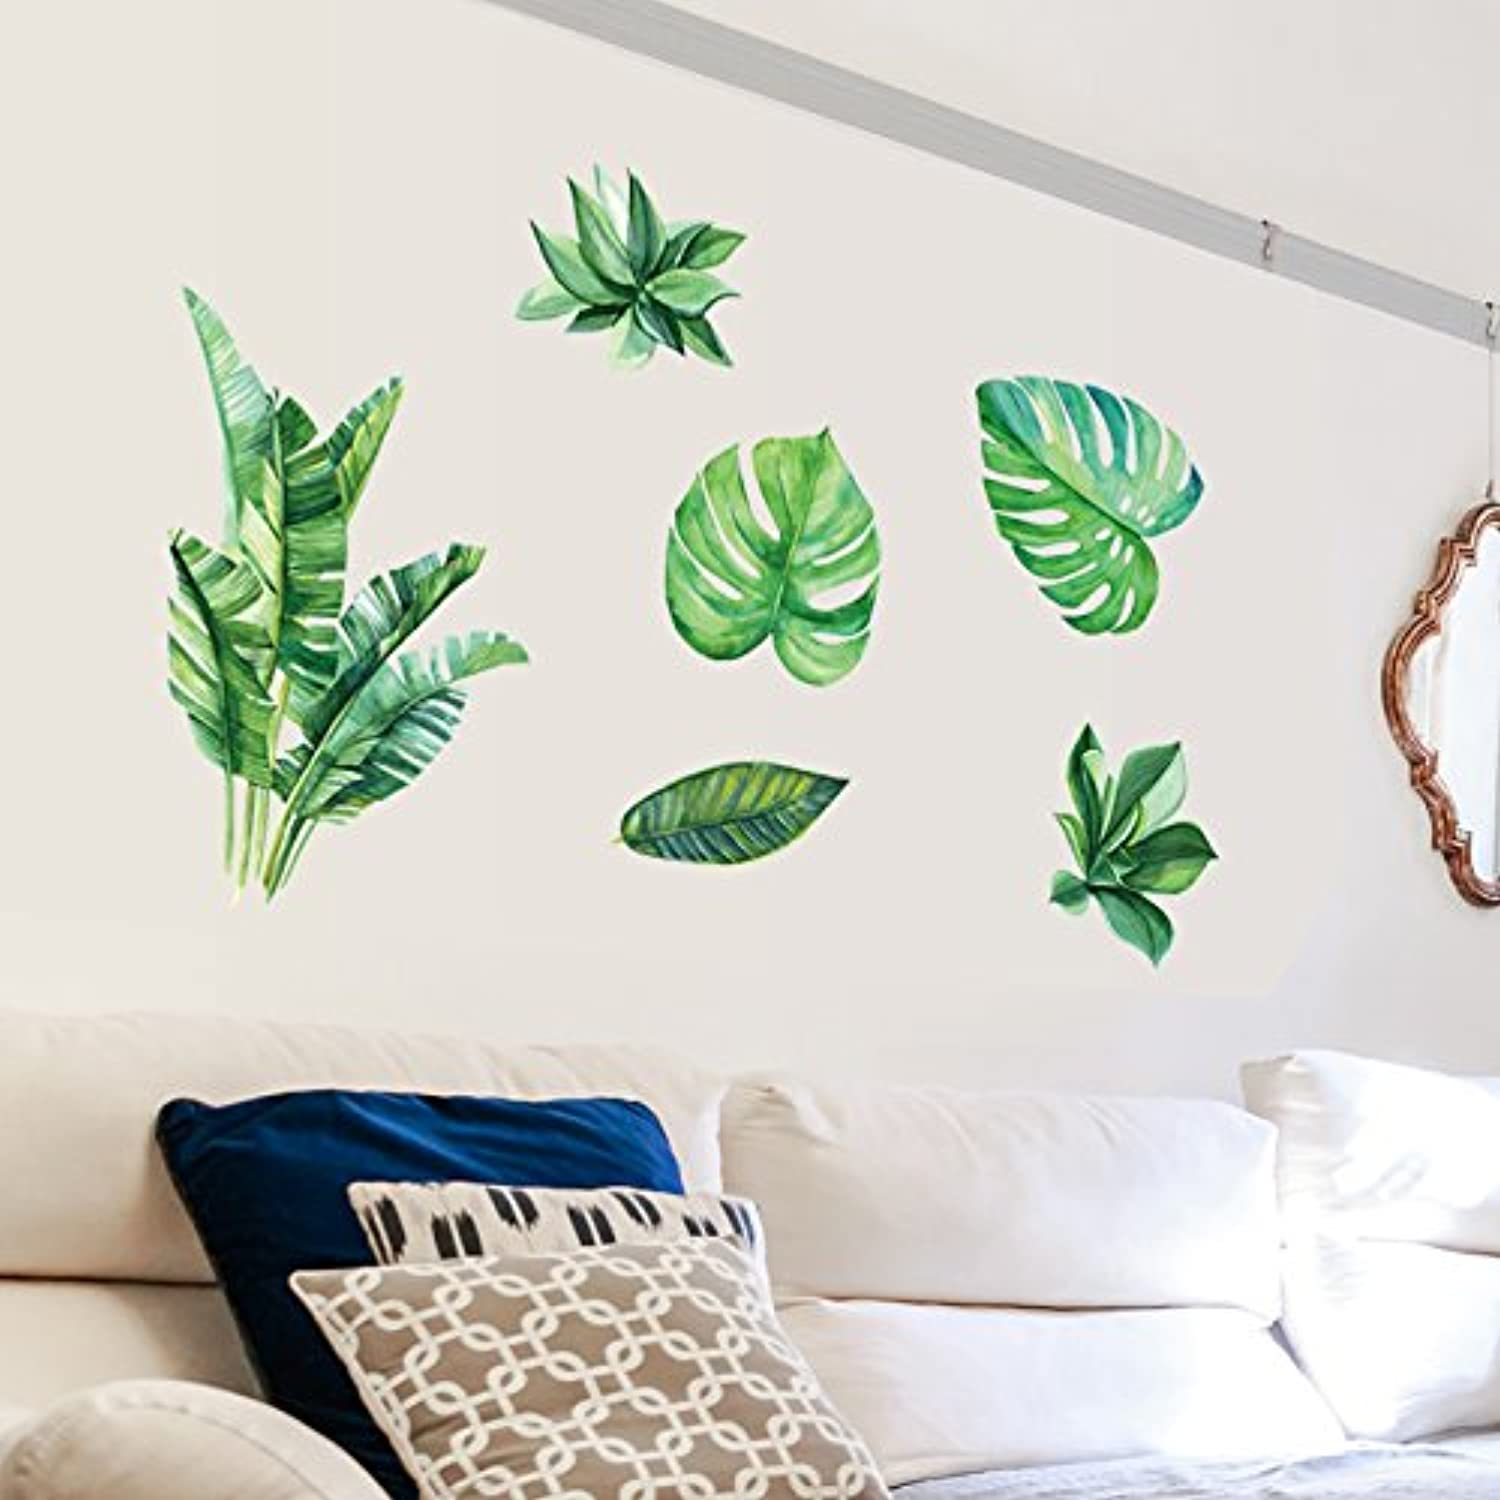 Znzbzt Leaves Wall Stickers Personality Creative Bedroom Stickers Restaurant Green Stickers, Green Plants, Large